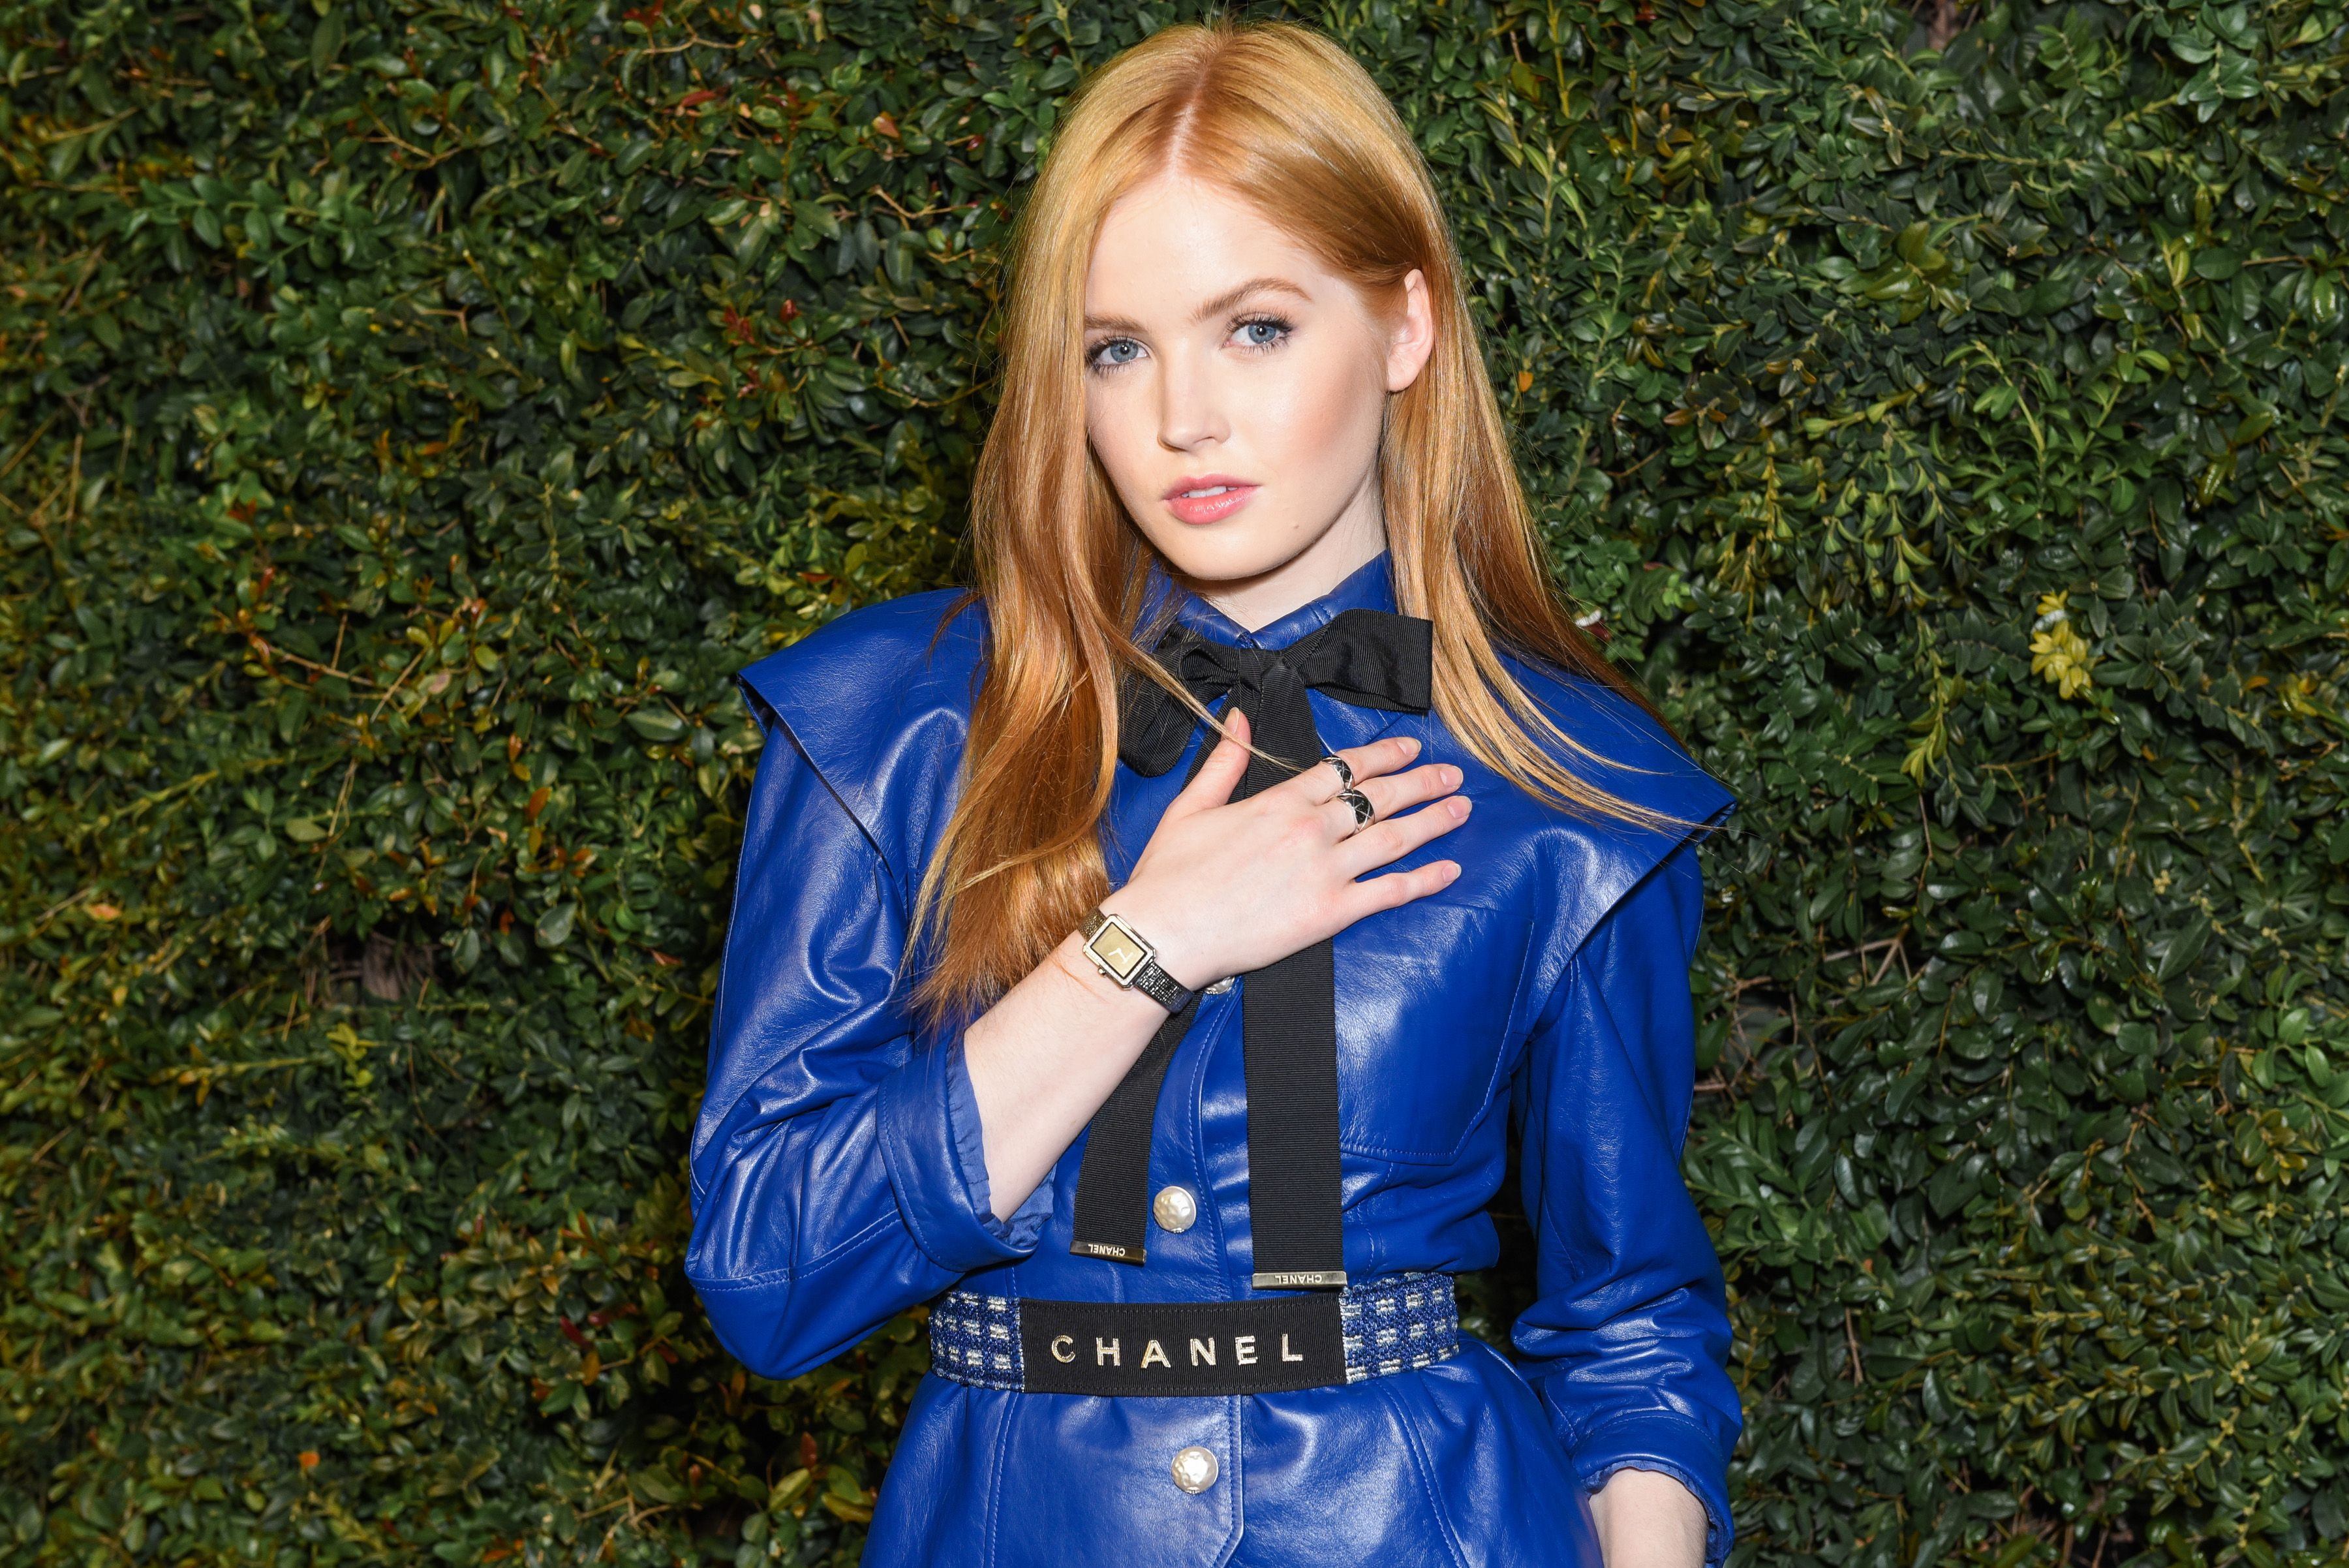 Discussion on this topic: Catherine de Castelbajac, ellie-bamber/